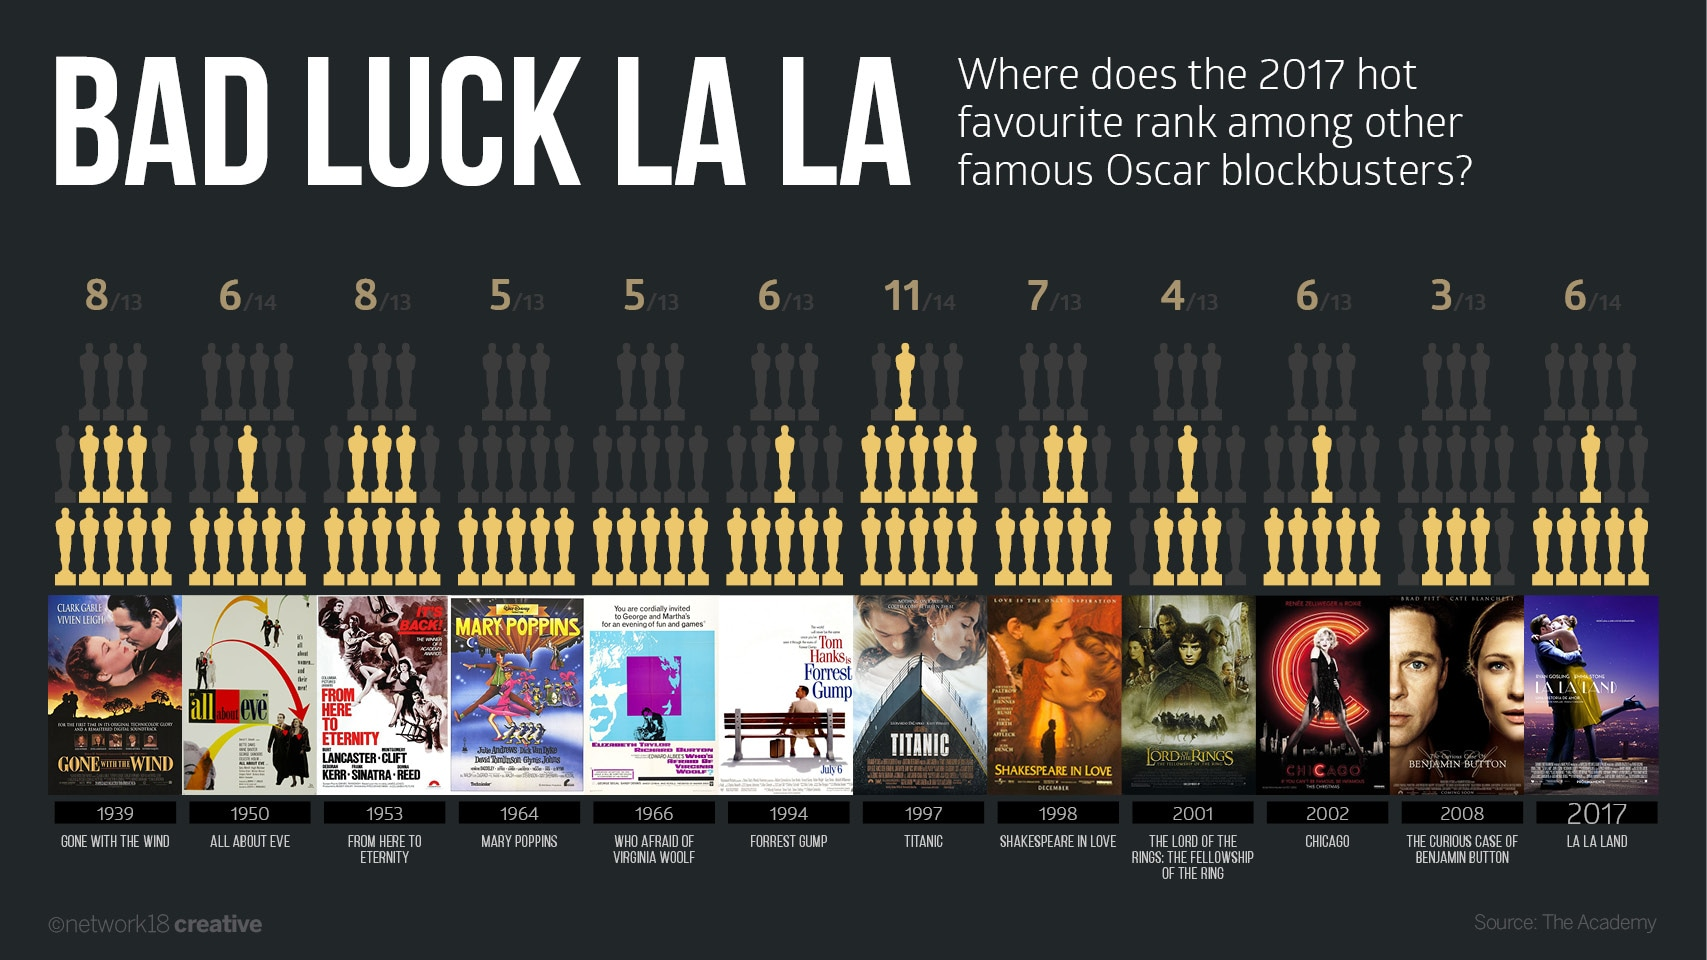 Oscars nominations vs winner-revised